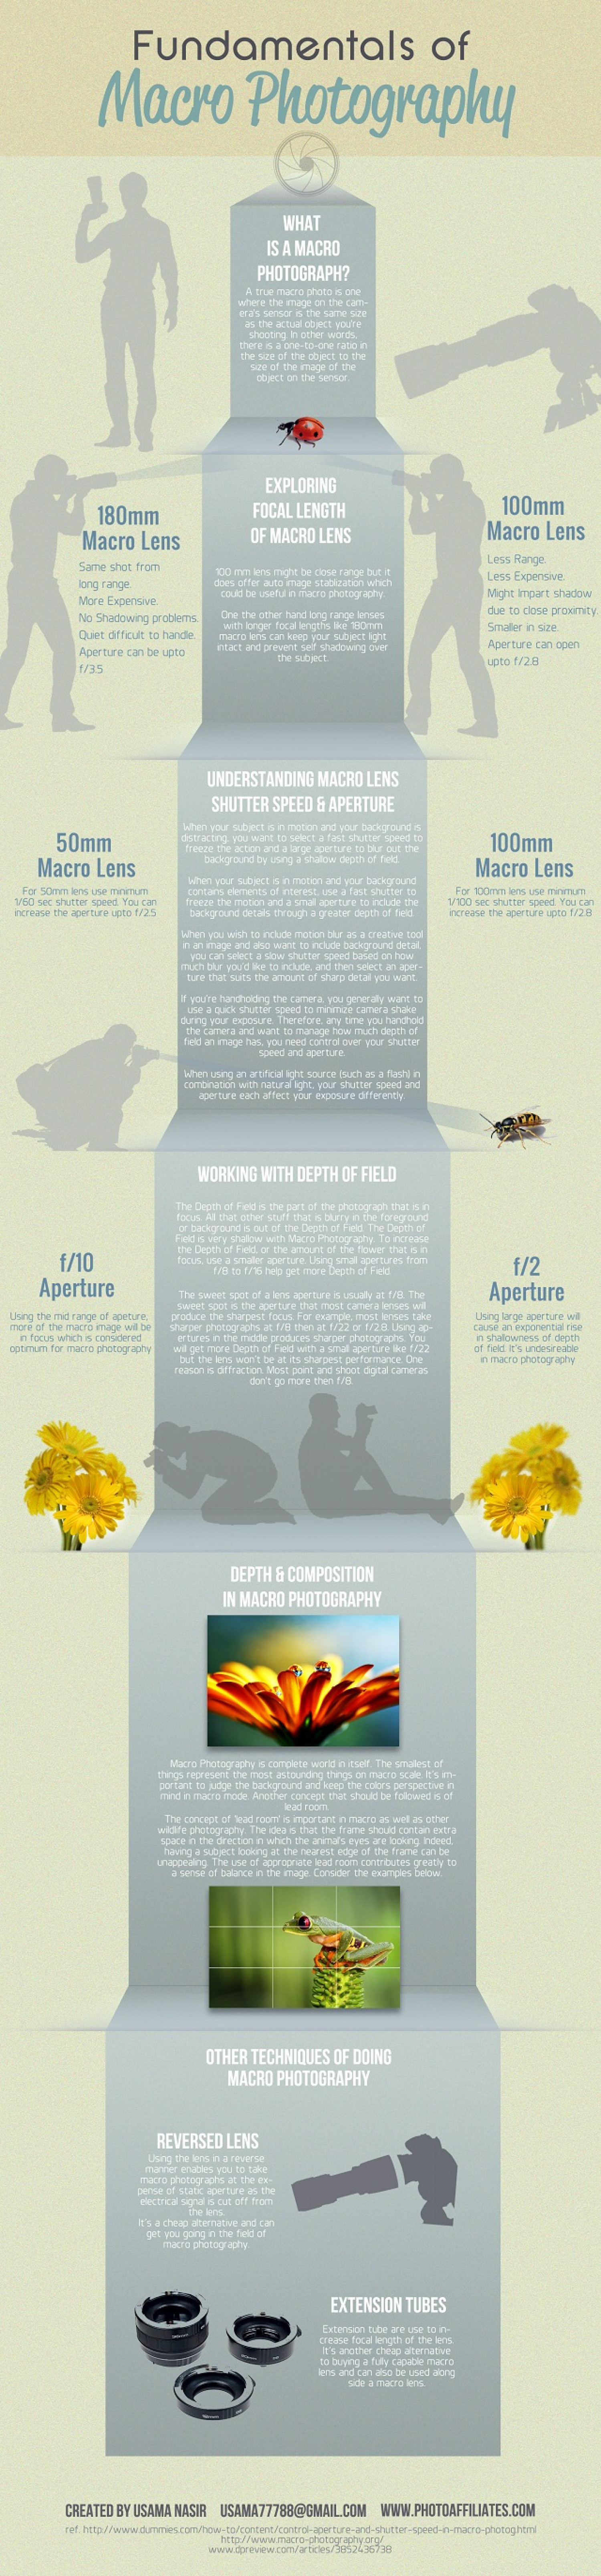 Fundamentals of Macro Photography Infographic